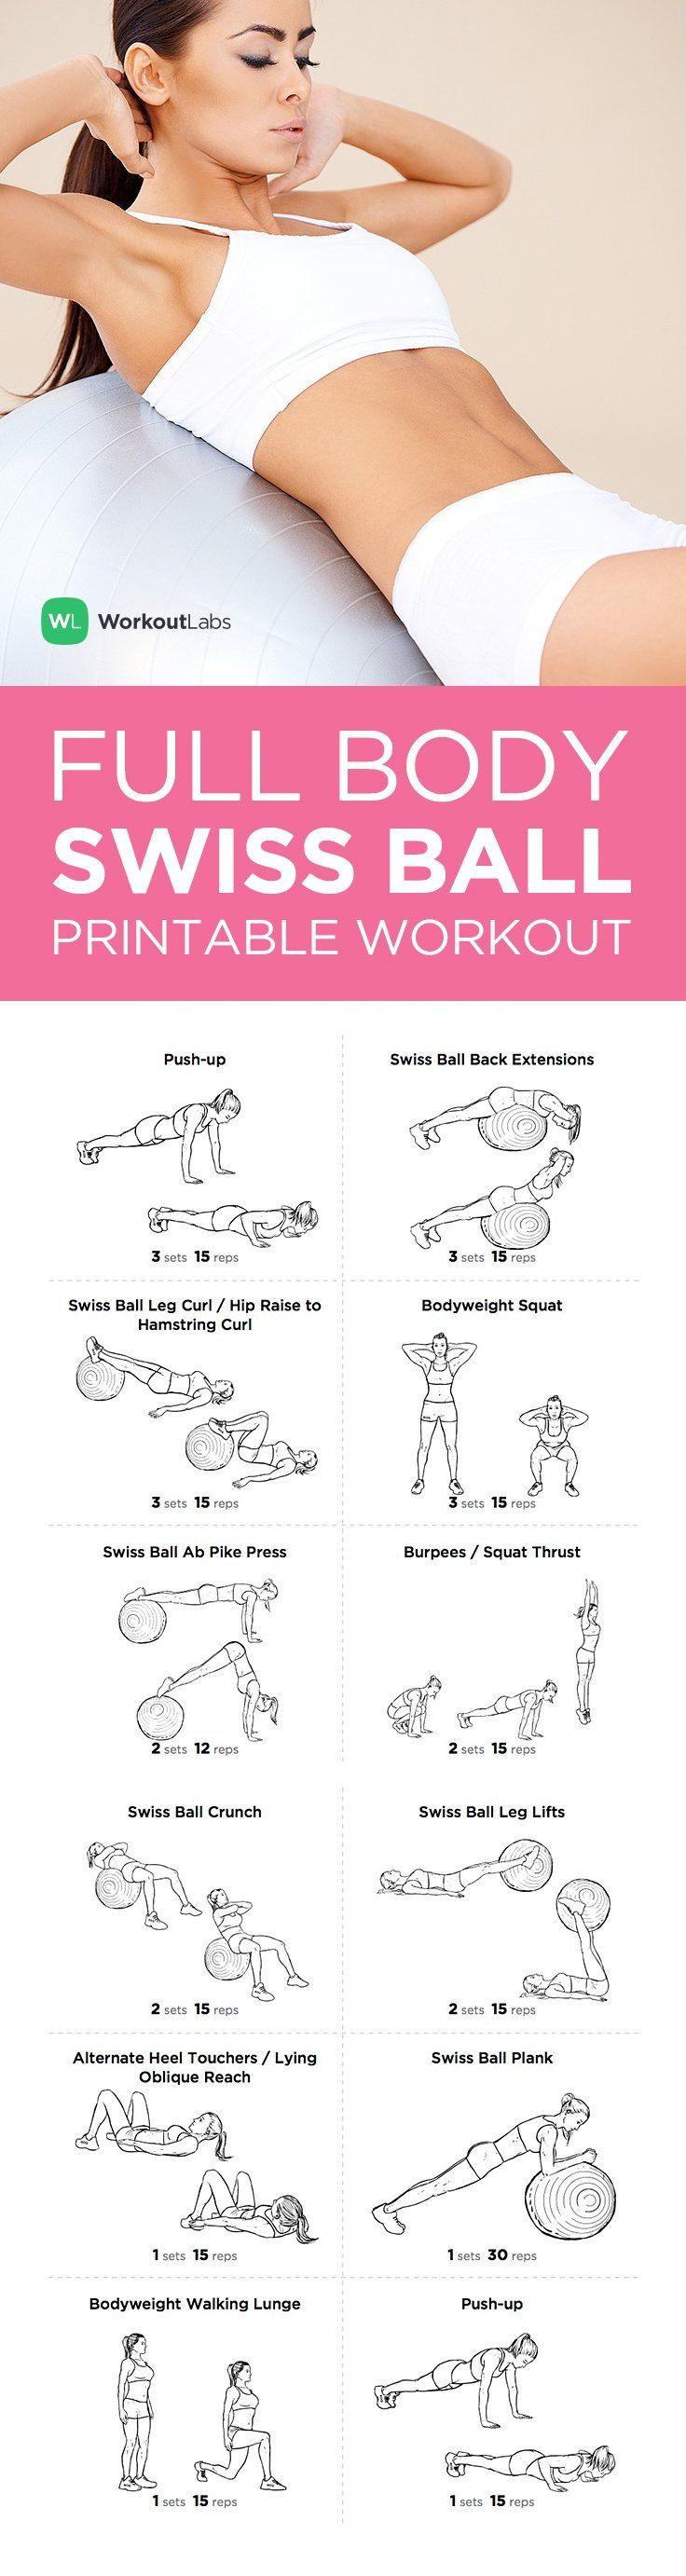 It's just a picture of Massif Printable Exercise Ball Workouts